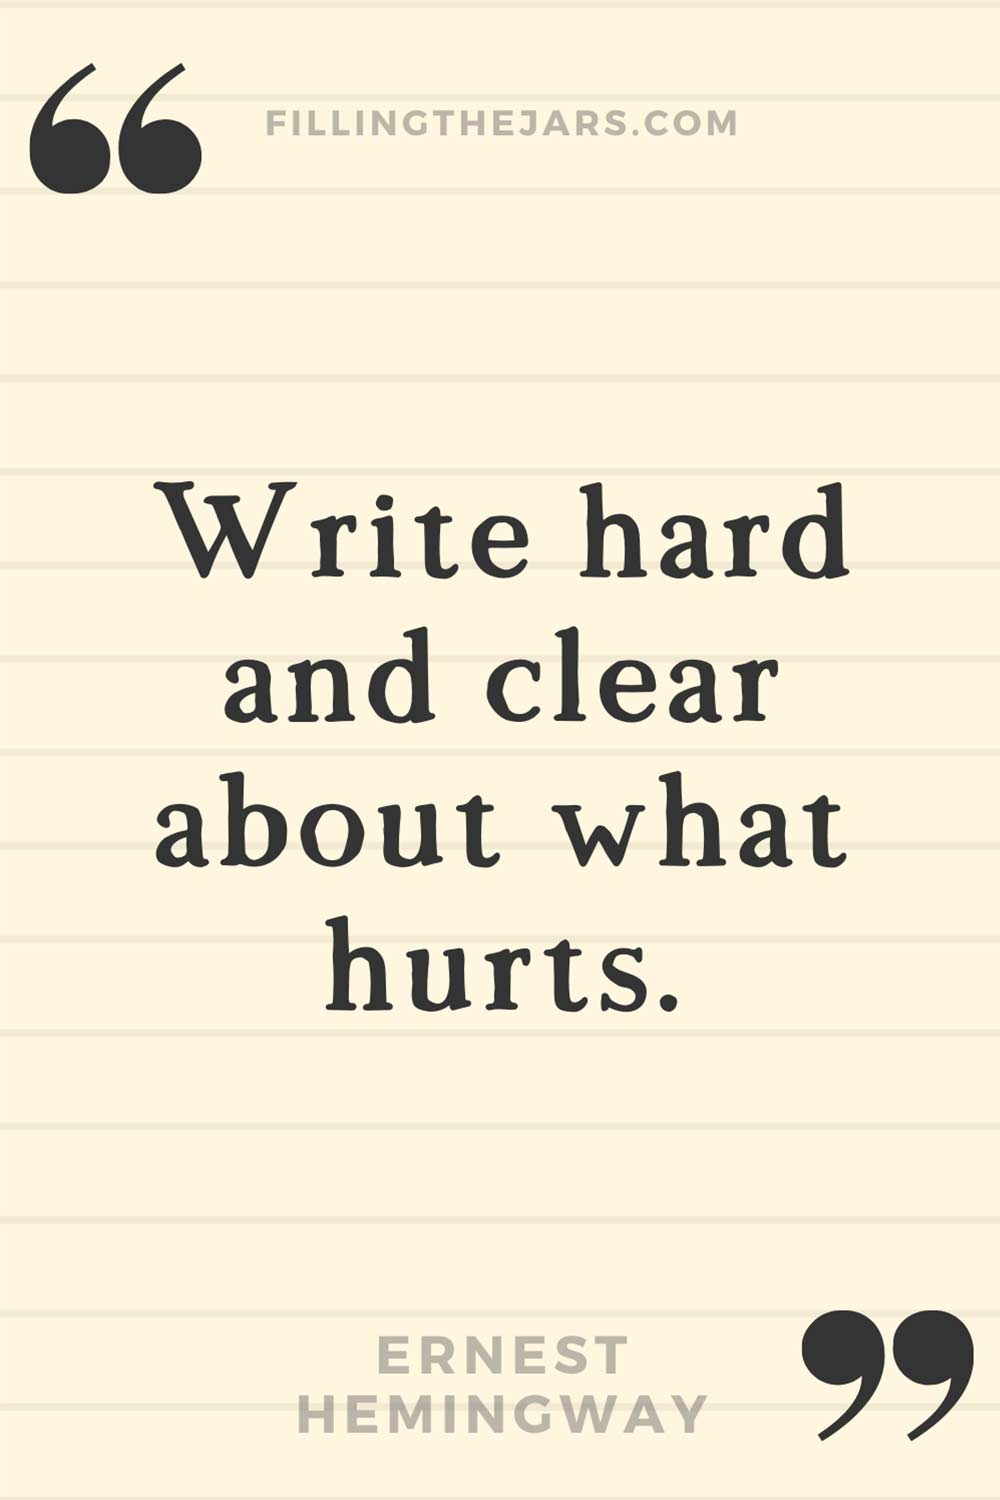 Ernest Hemingway quote 'Write hard and clear about what hurts.' on lightly lined background.